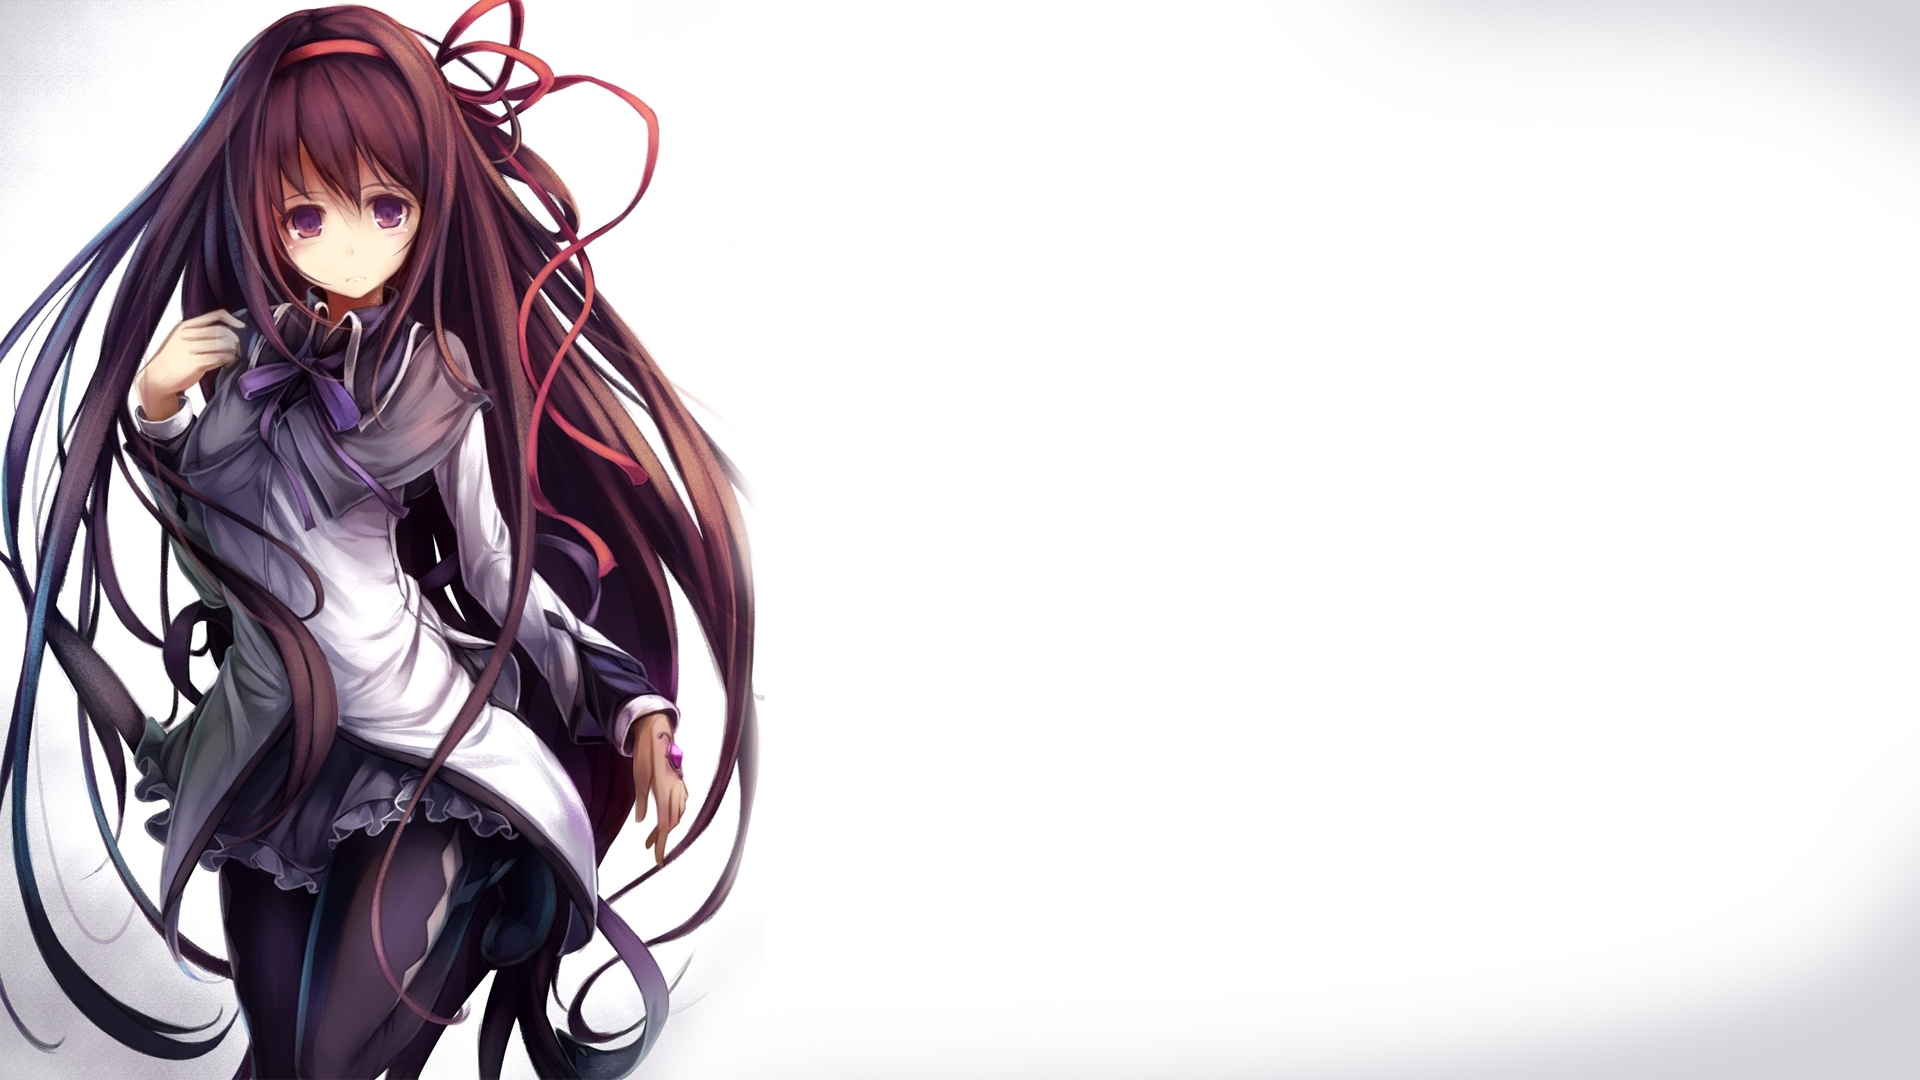 anime girl wallpapers hd | pixelstalk